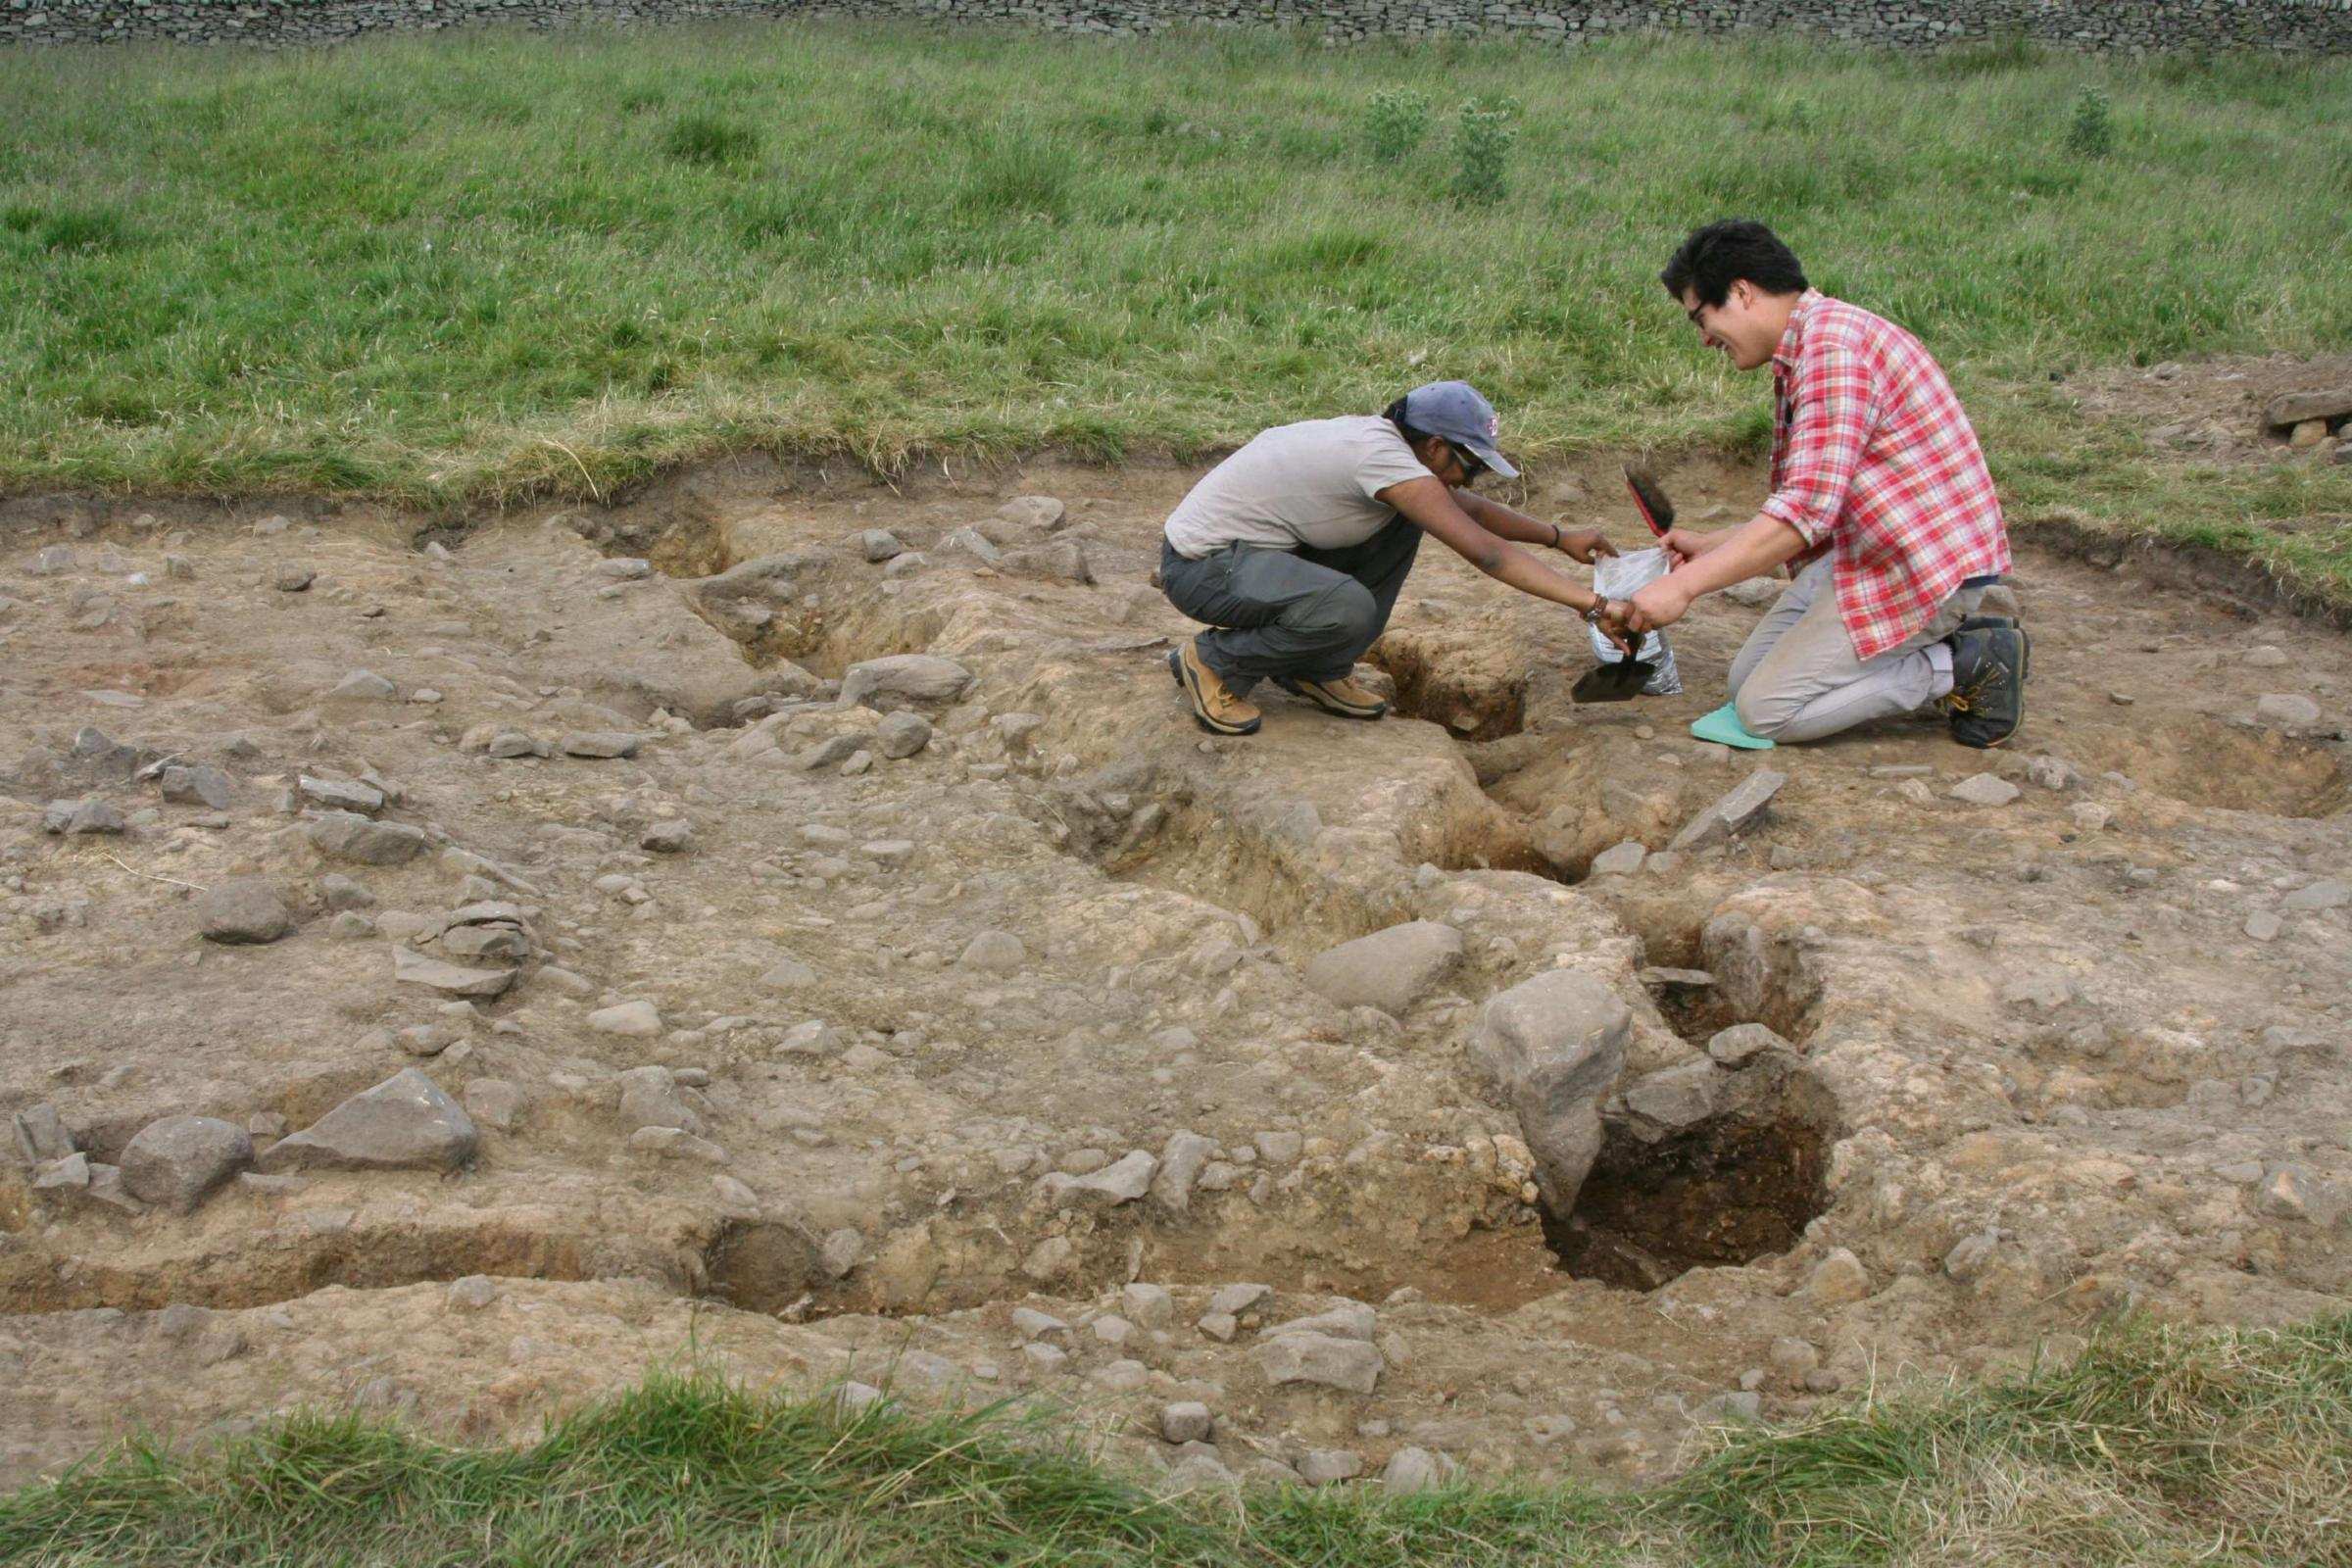 Archaeology students find 6,000-year-old house remains at Yarnbury Henge, Grassington